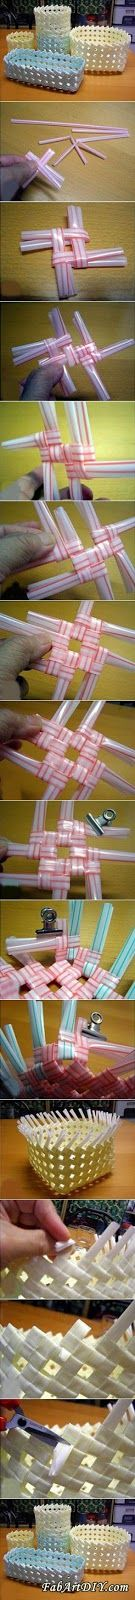 Not in English/ Make a Straw Basket out of Straws/ Just follow the picture. How cool is that?